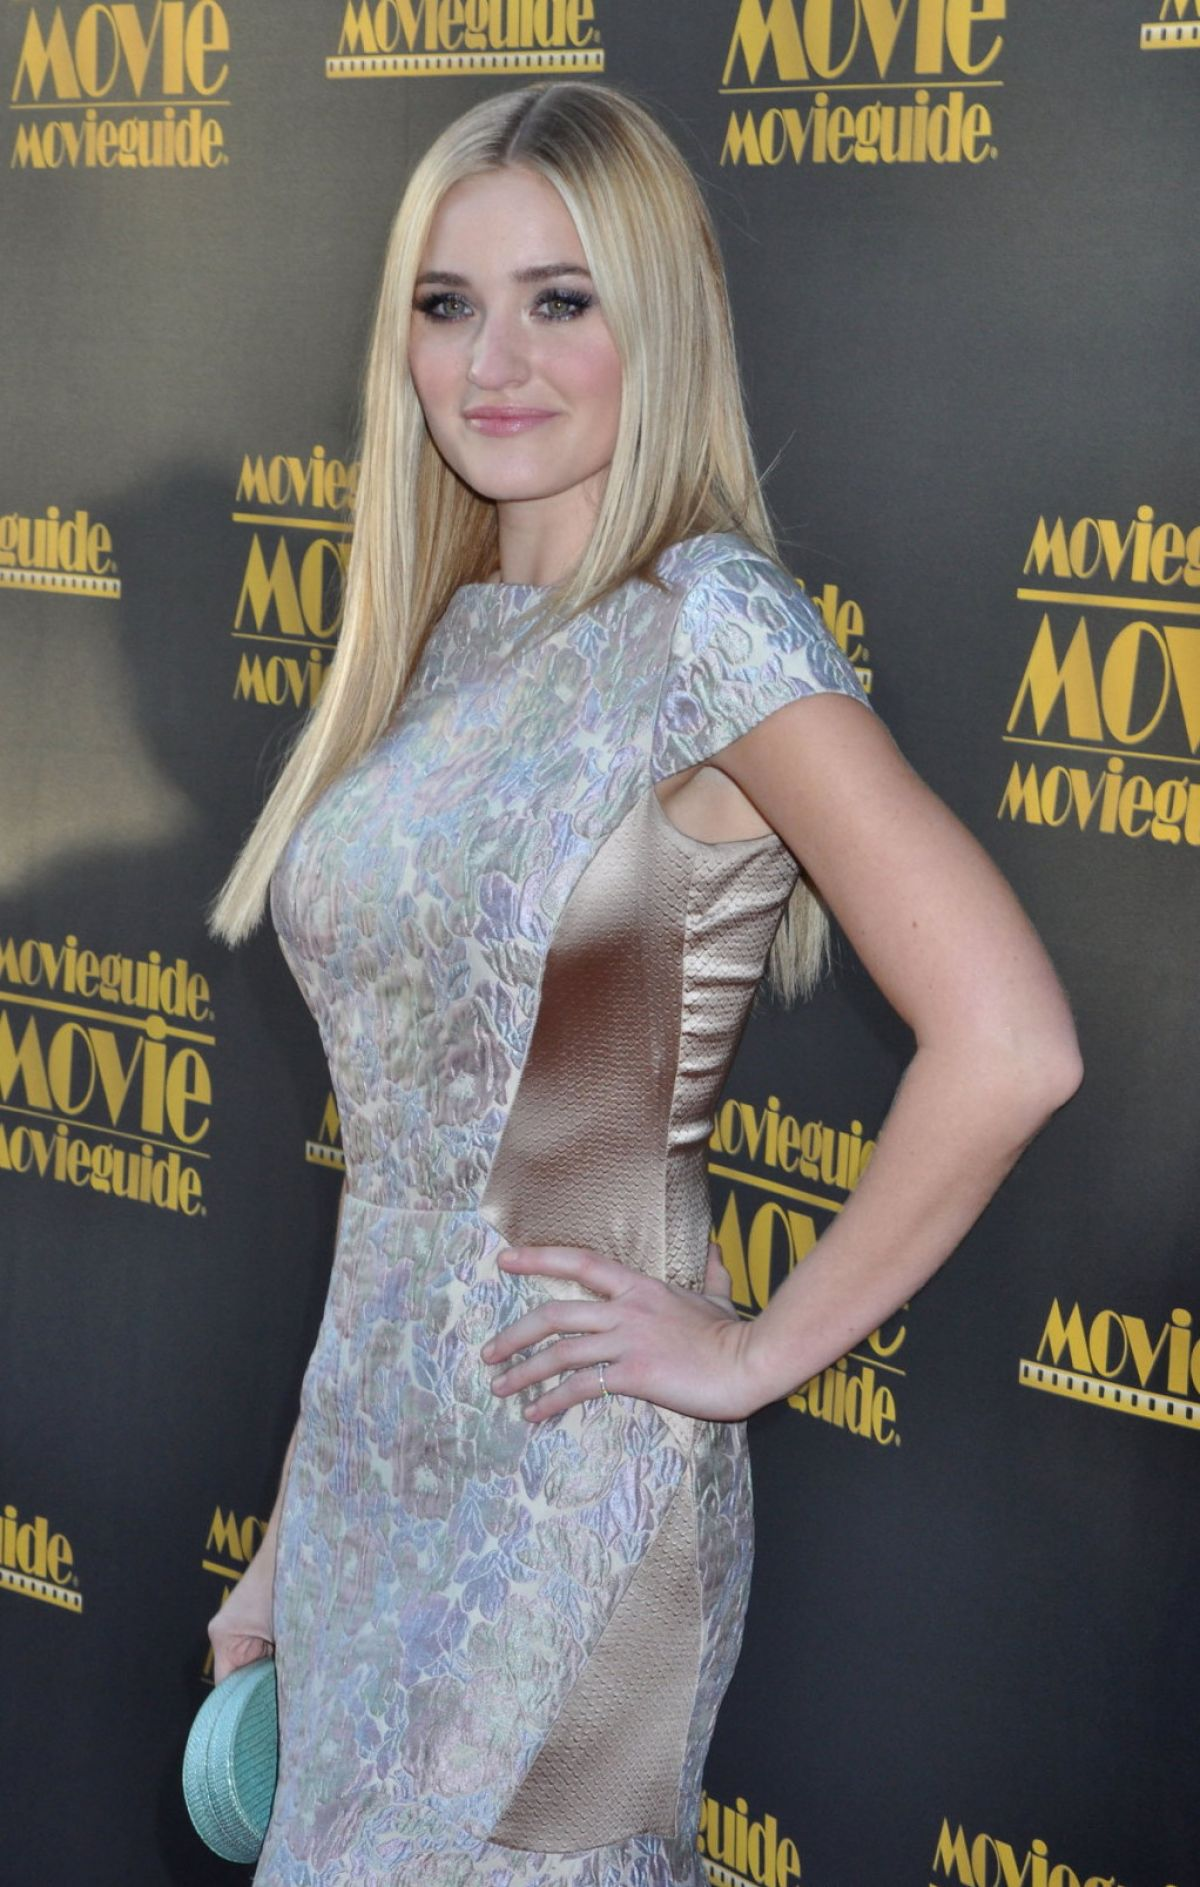 AJ MICHALKA at 22nd Annual Movieguide Awards Gala in Universal City